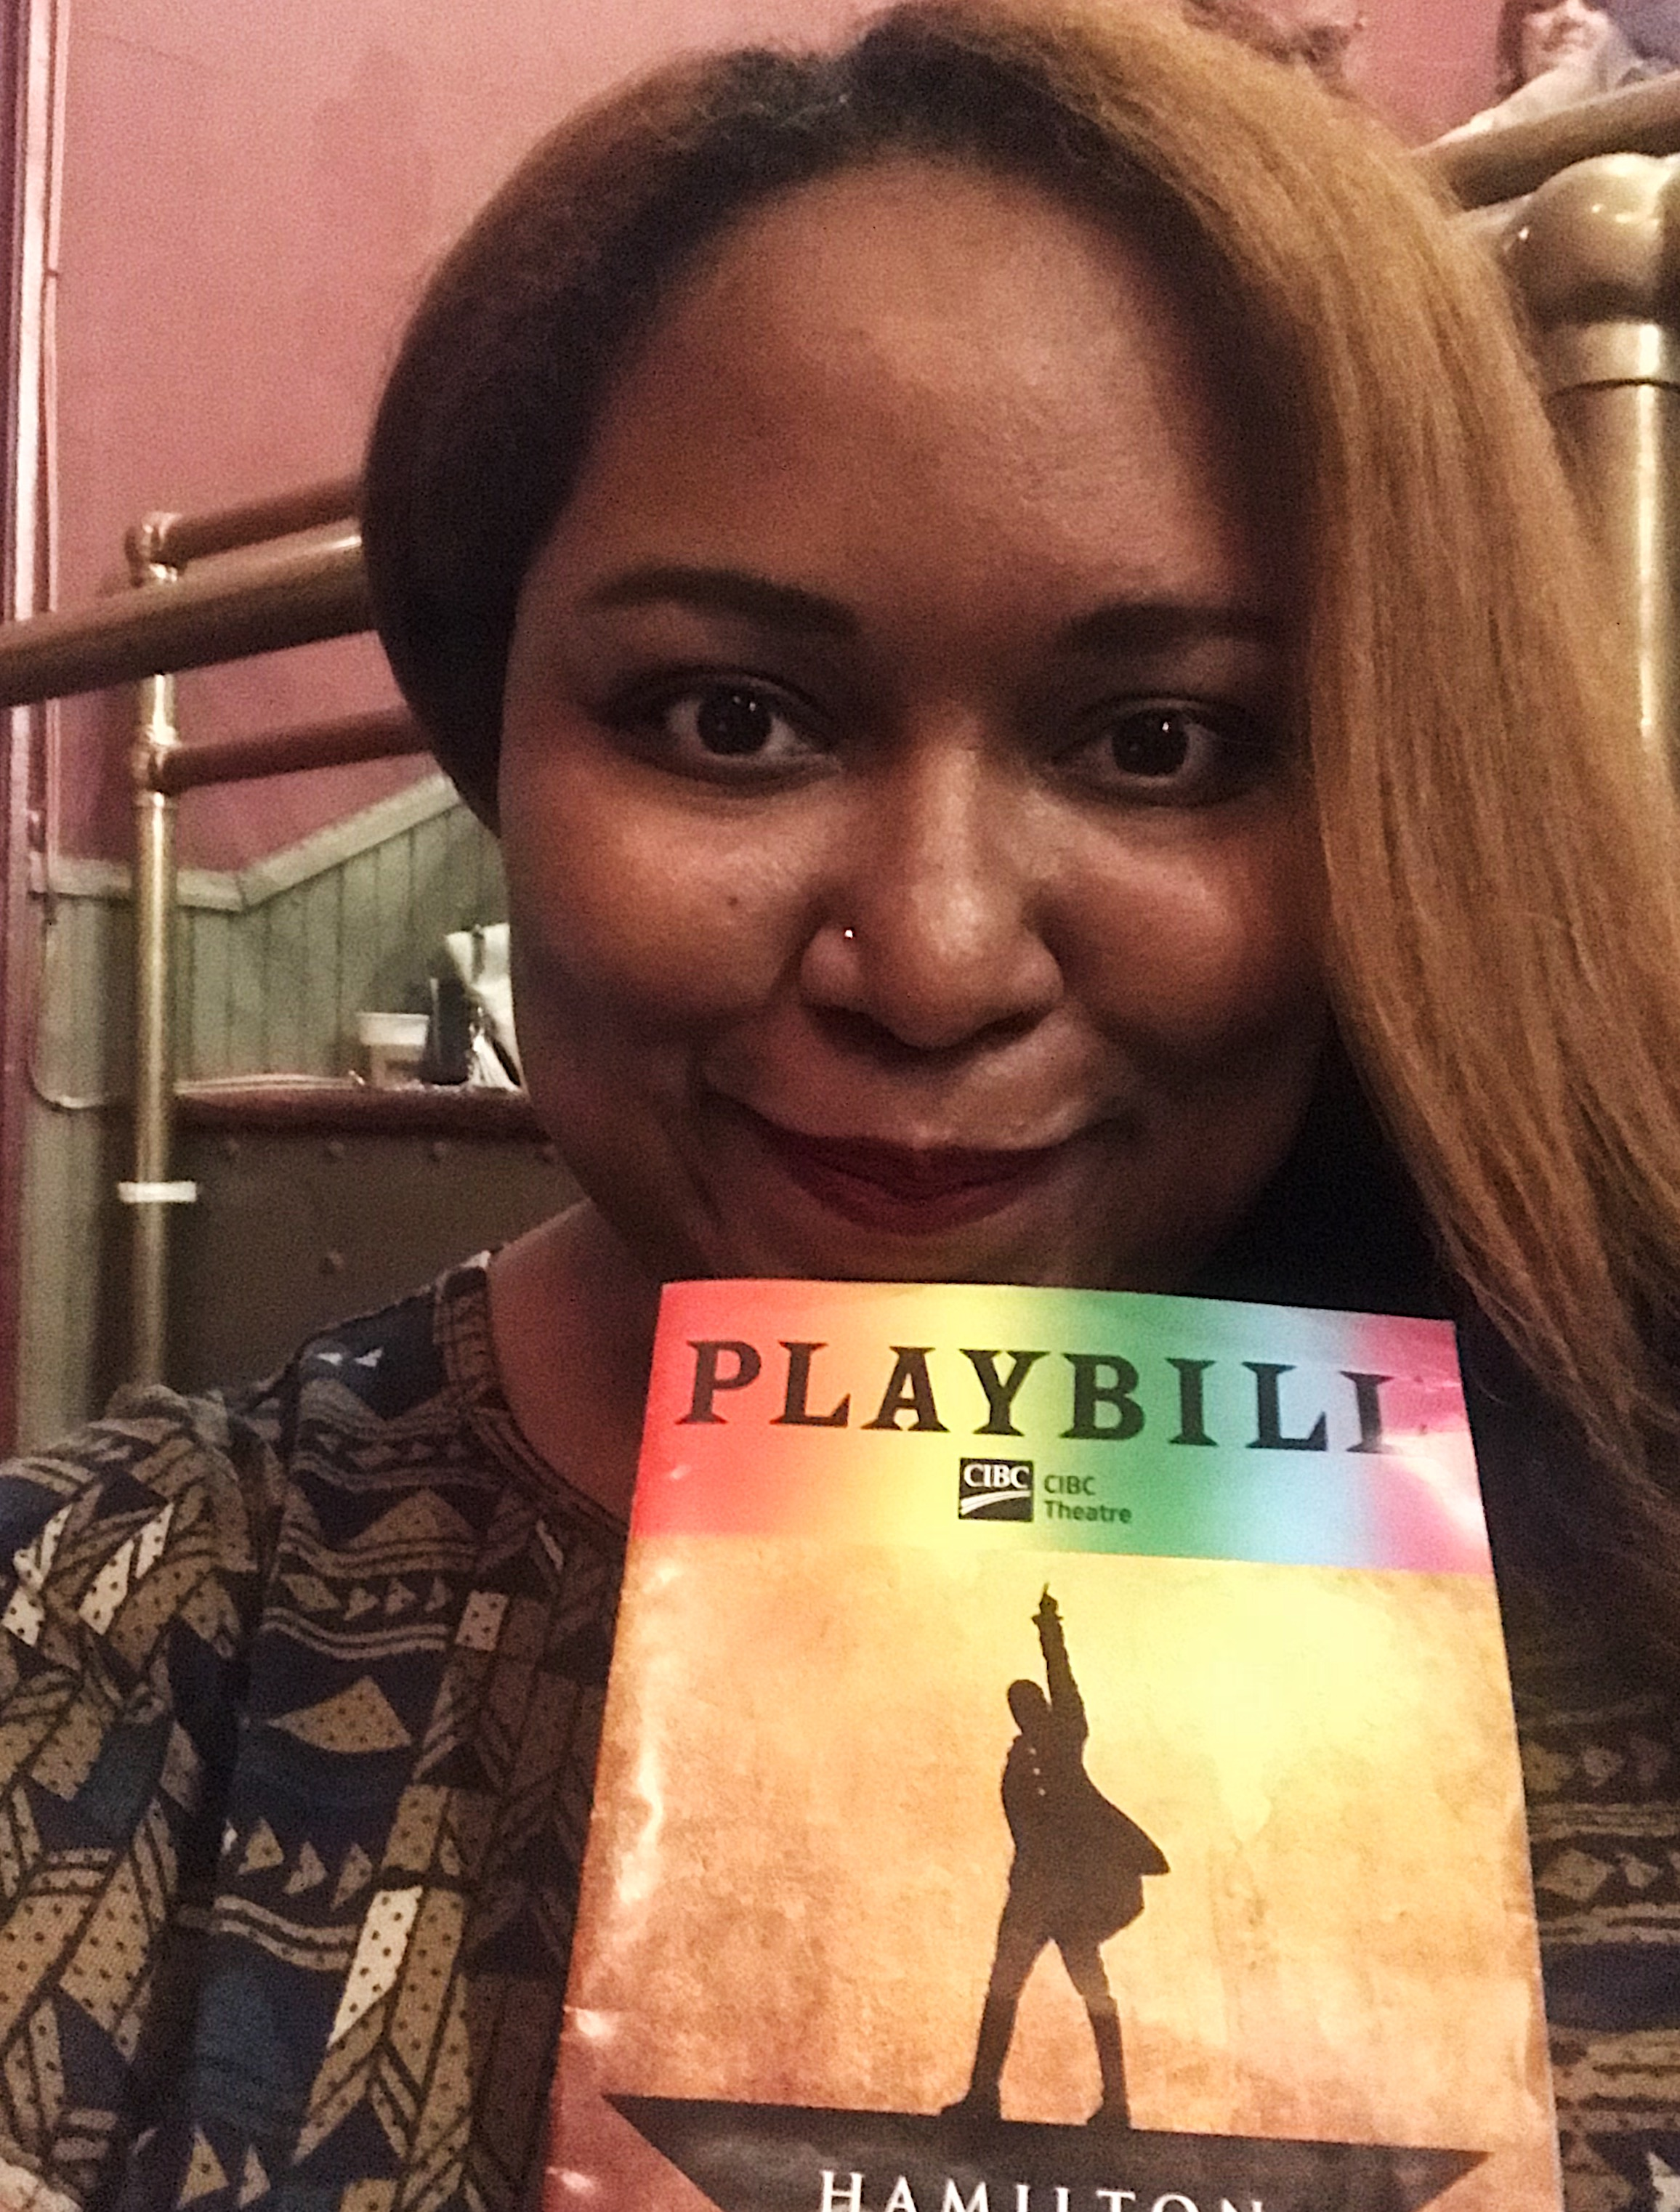 MAJOR BUCKET LIST ITEM COMPLETED: Finally saw Hamilton! Treated myself to a phenomenal show at the CIBC Theater in Chicago the night before speaking at Bossed Up Bootcamp , and it was the perfect way to mix business and pleasure.